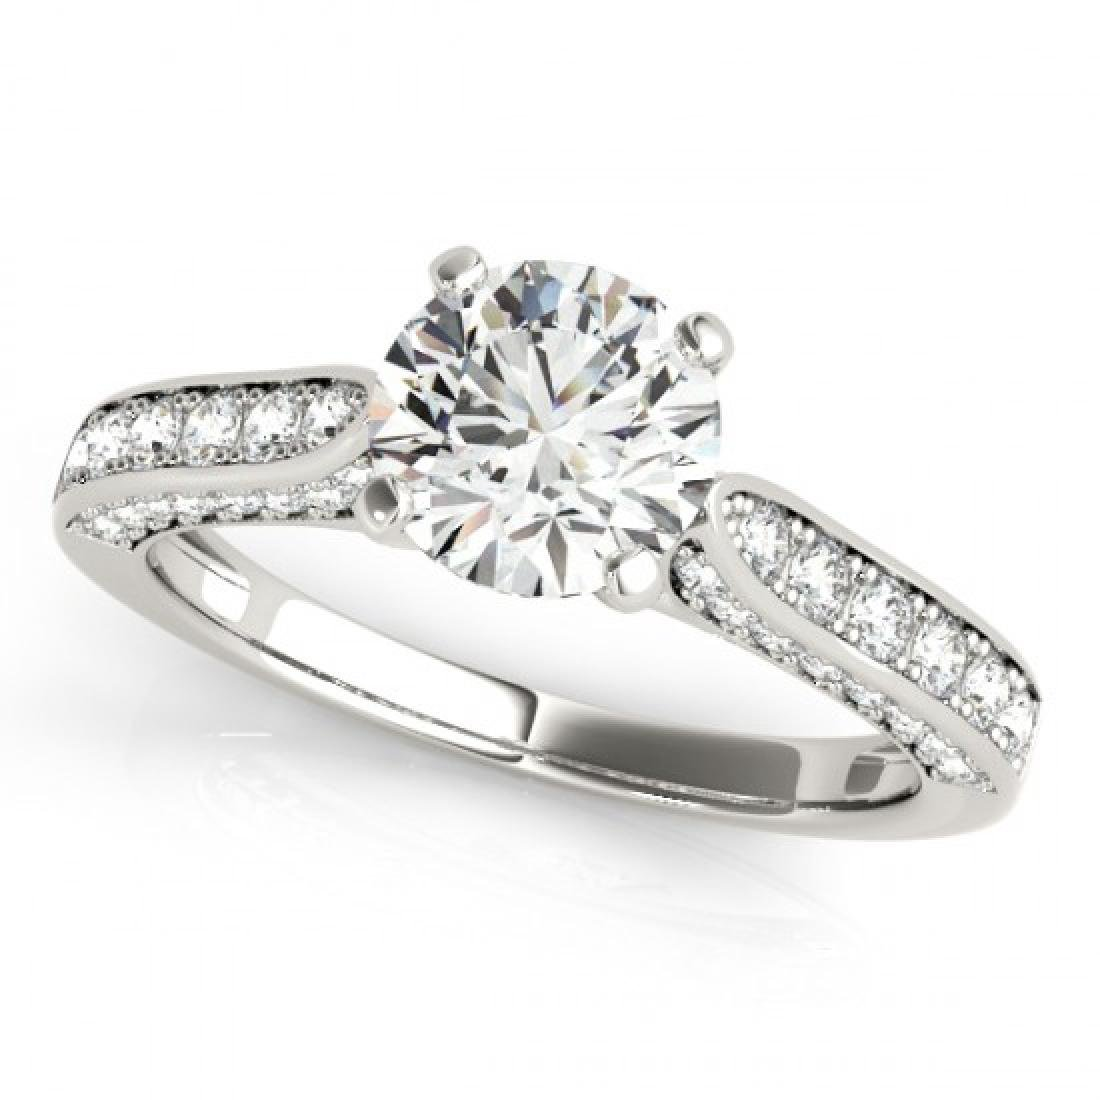 1.10 CTW Certified VS/SI Diamond Solitaire Ring 14K